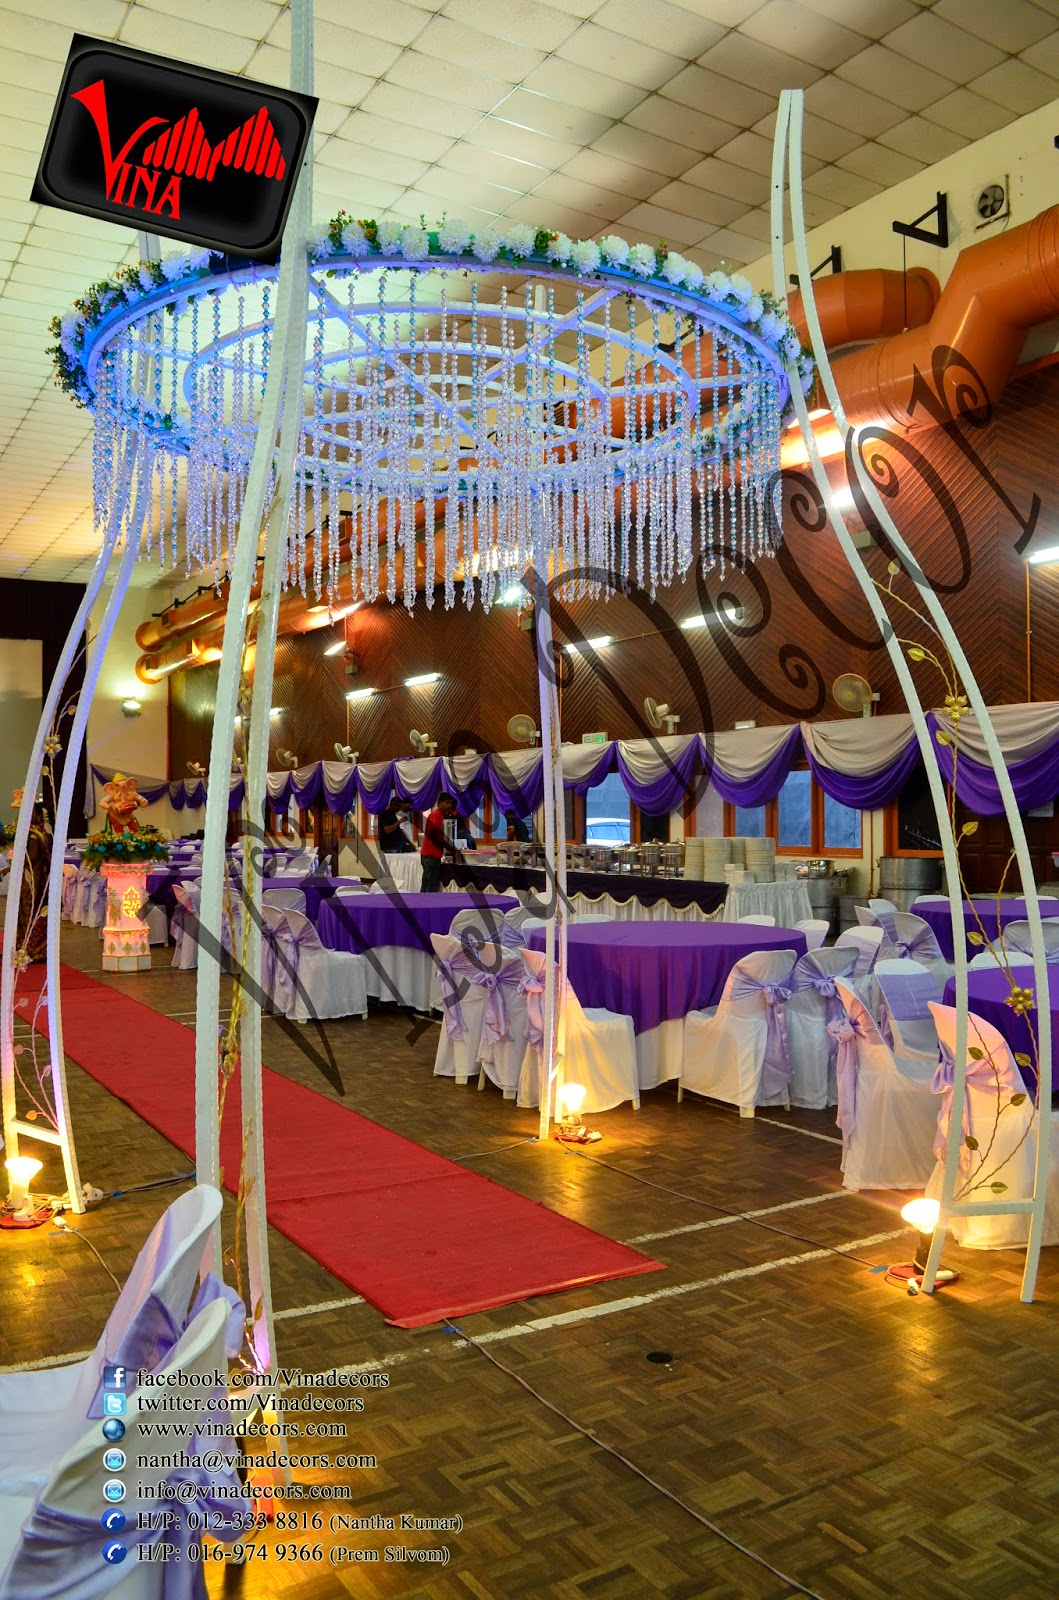 Wedding and Wedding dinner at Dewan Dato Ahmad Razali, Kampung Melayu Ampang, 68000 Ampang, Selangor, Malaysia (Ampang Hall) (Setup for Ganesha Flower pillar, Red Carpet, Stage Scallop and Backdrop with lighting, Manavarai, Crystal Dome Arch chair (cover & ribbon) and Table (cloth).